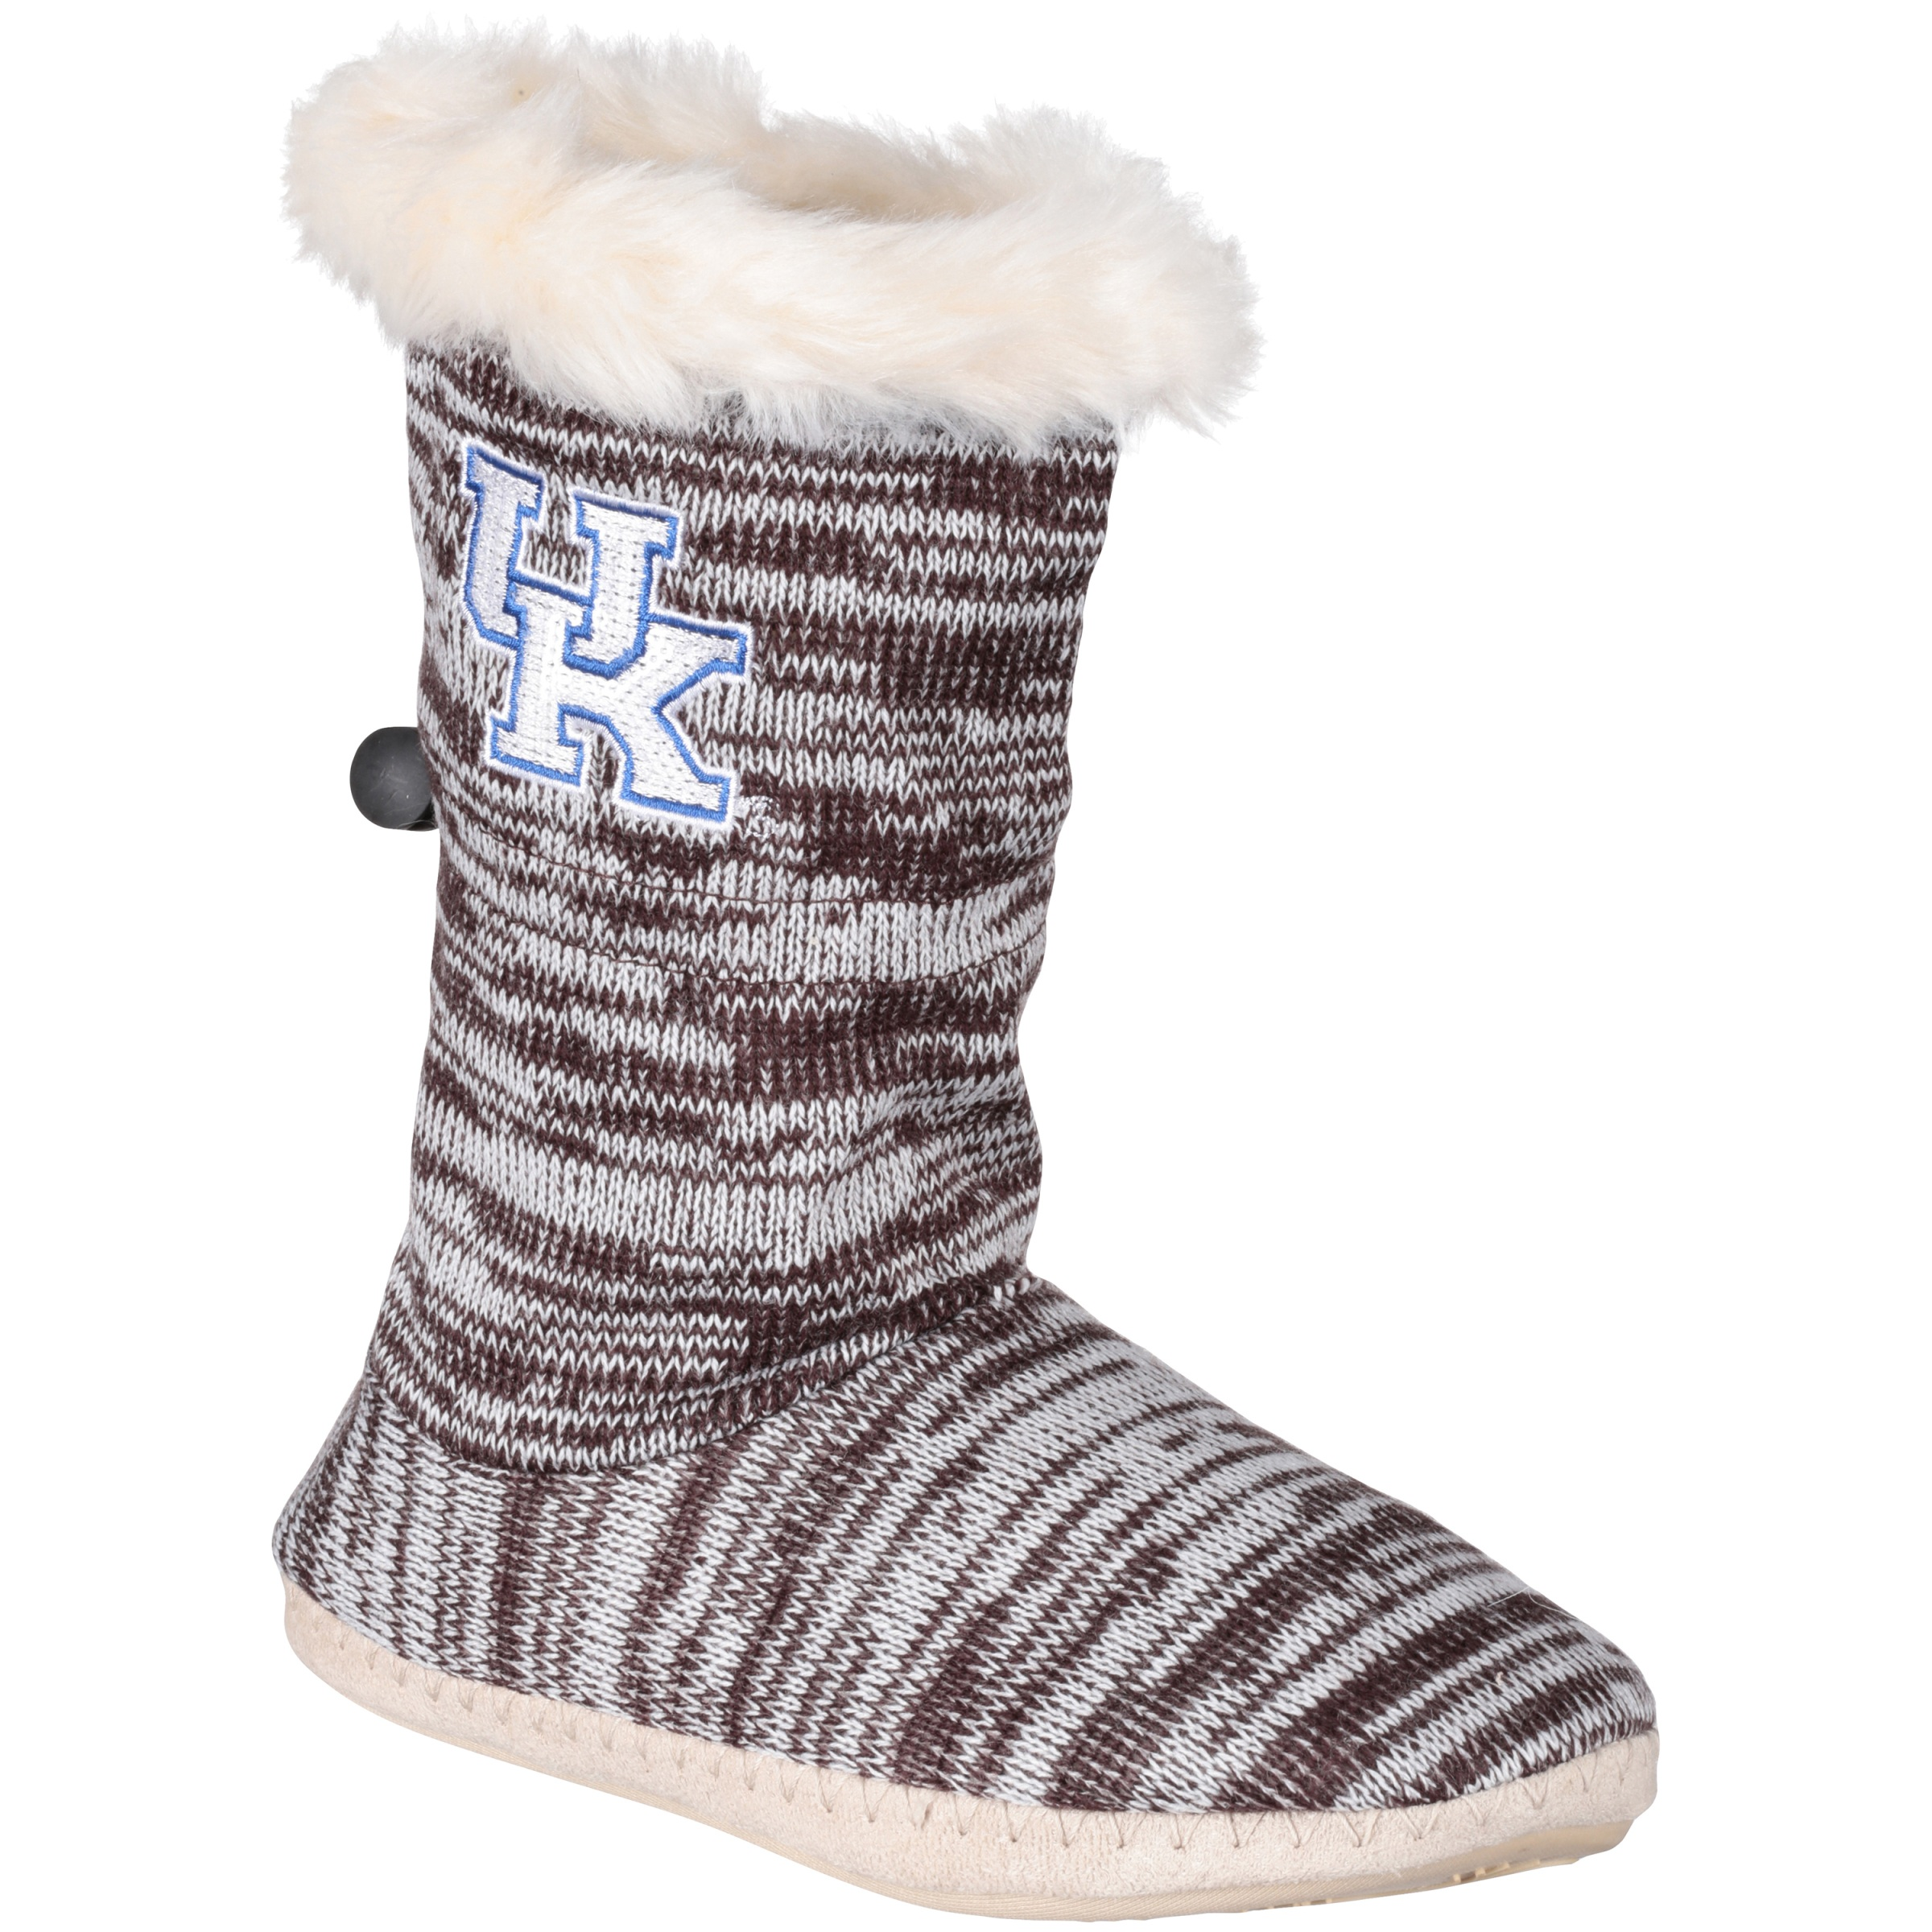 Collegiate Footwear University of Kentucky Boot Slippers 1 pr. by Renaissance Imports, Inc.